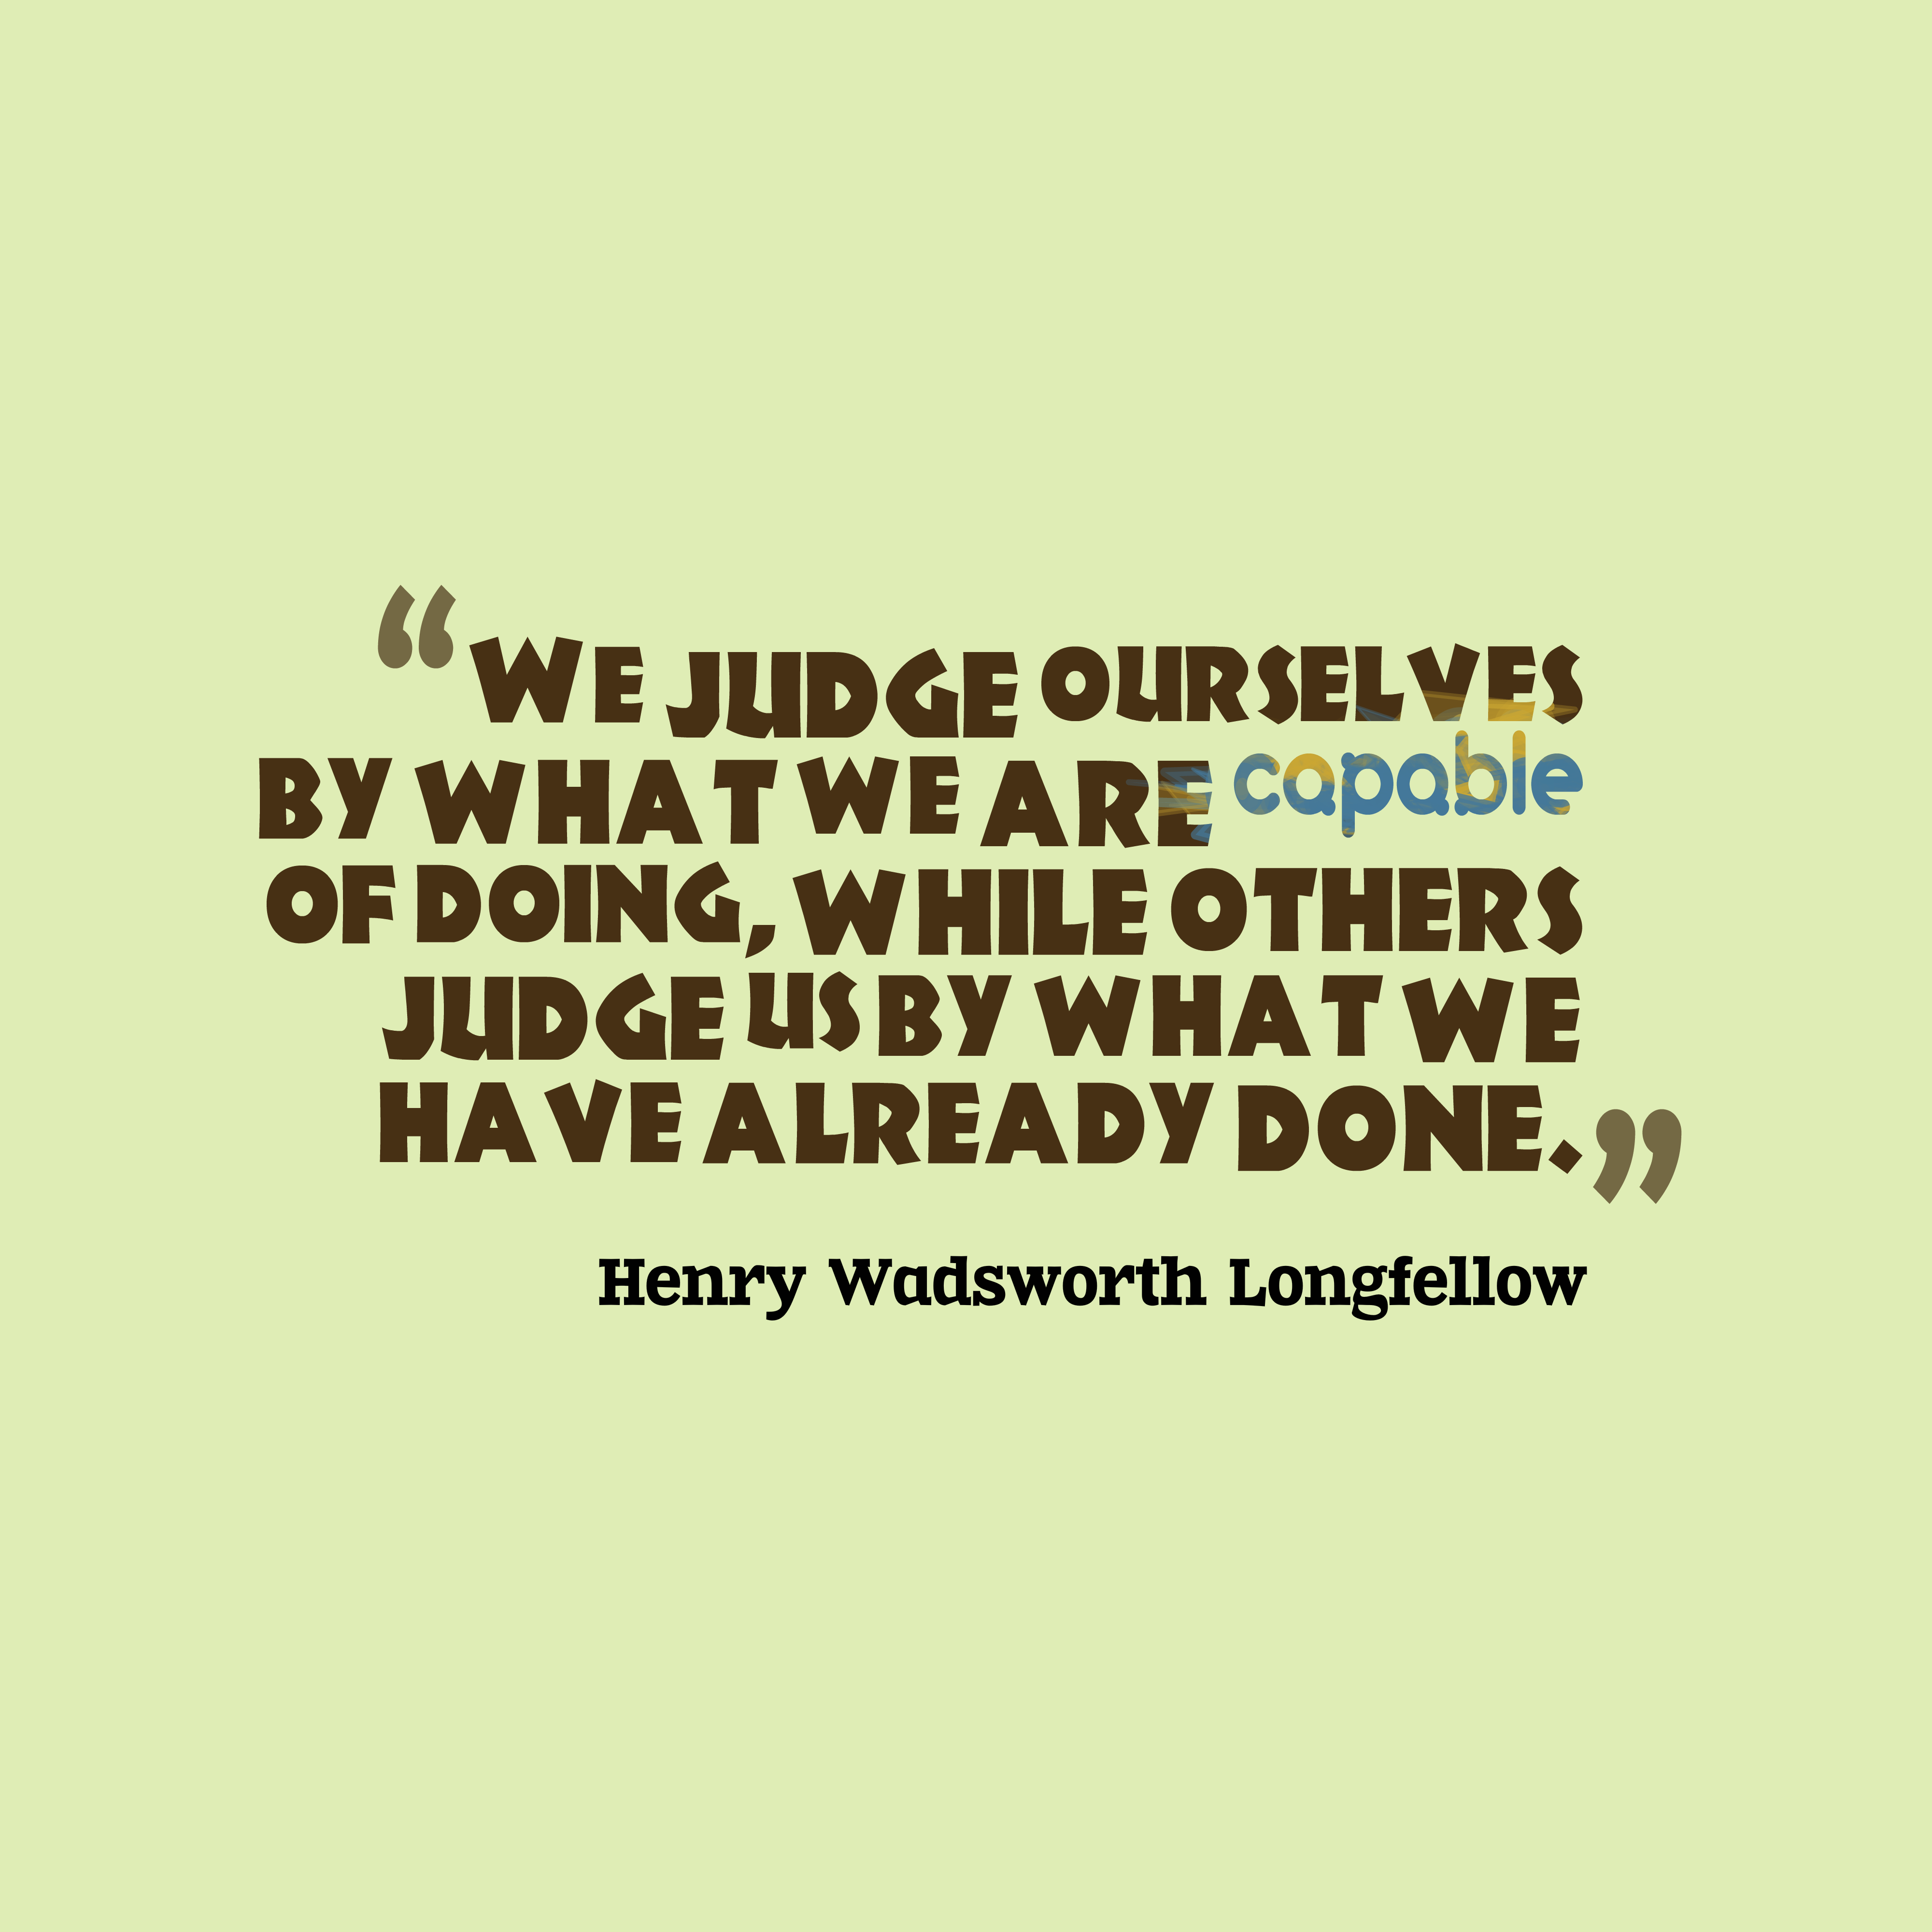 Quotes image of We judge ourselves by what we are capable of doing, while others judge us by what we have already done.